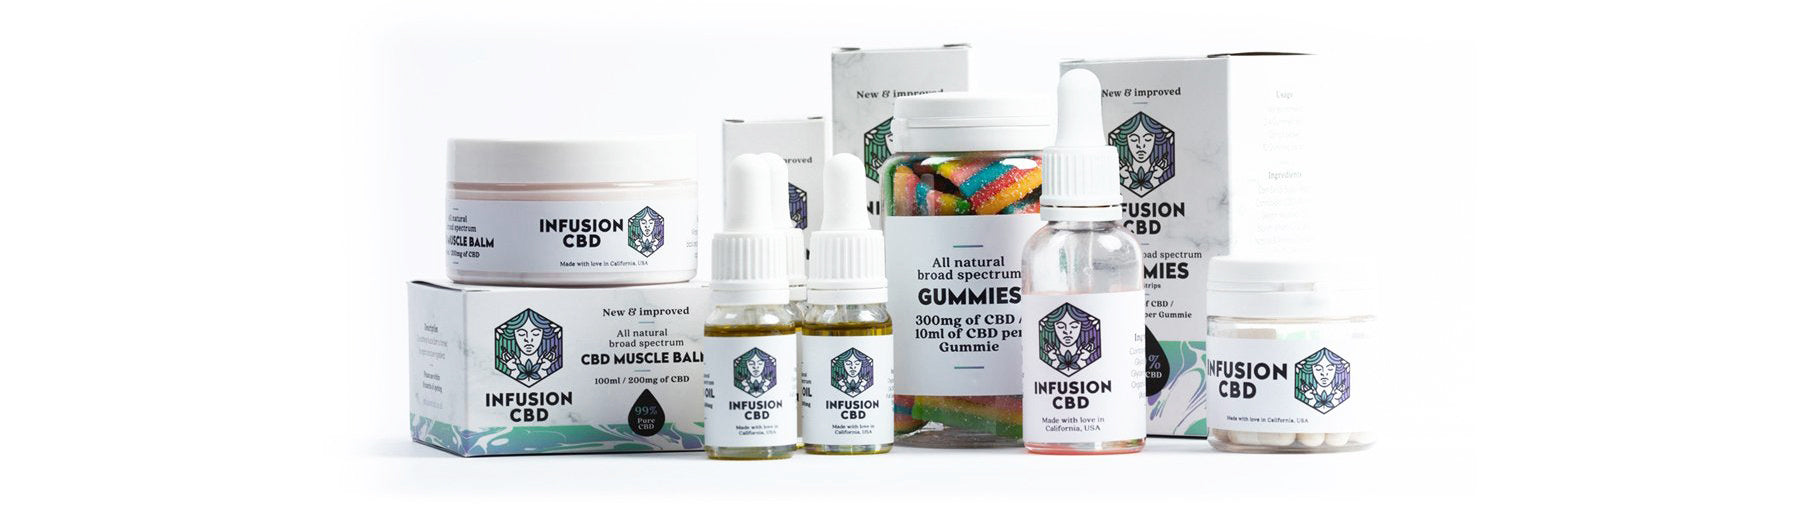 Infusion CBD product collection